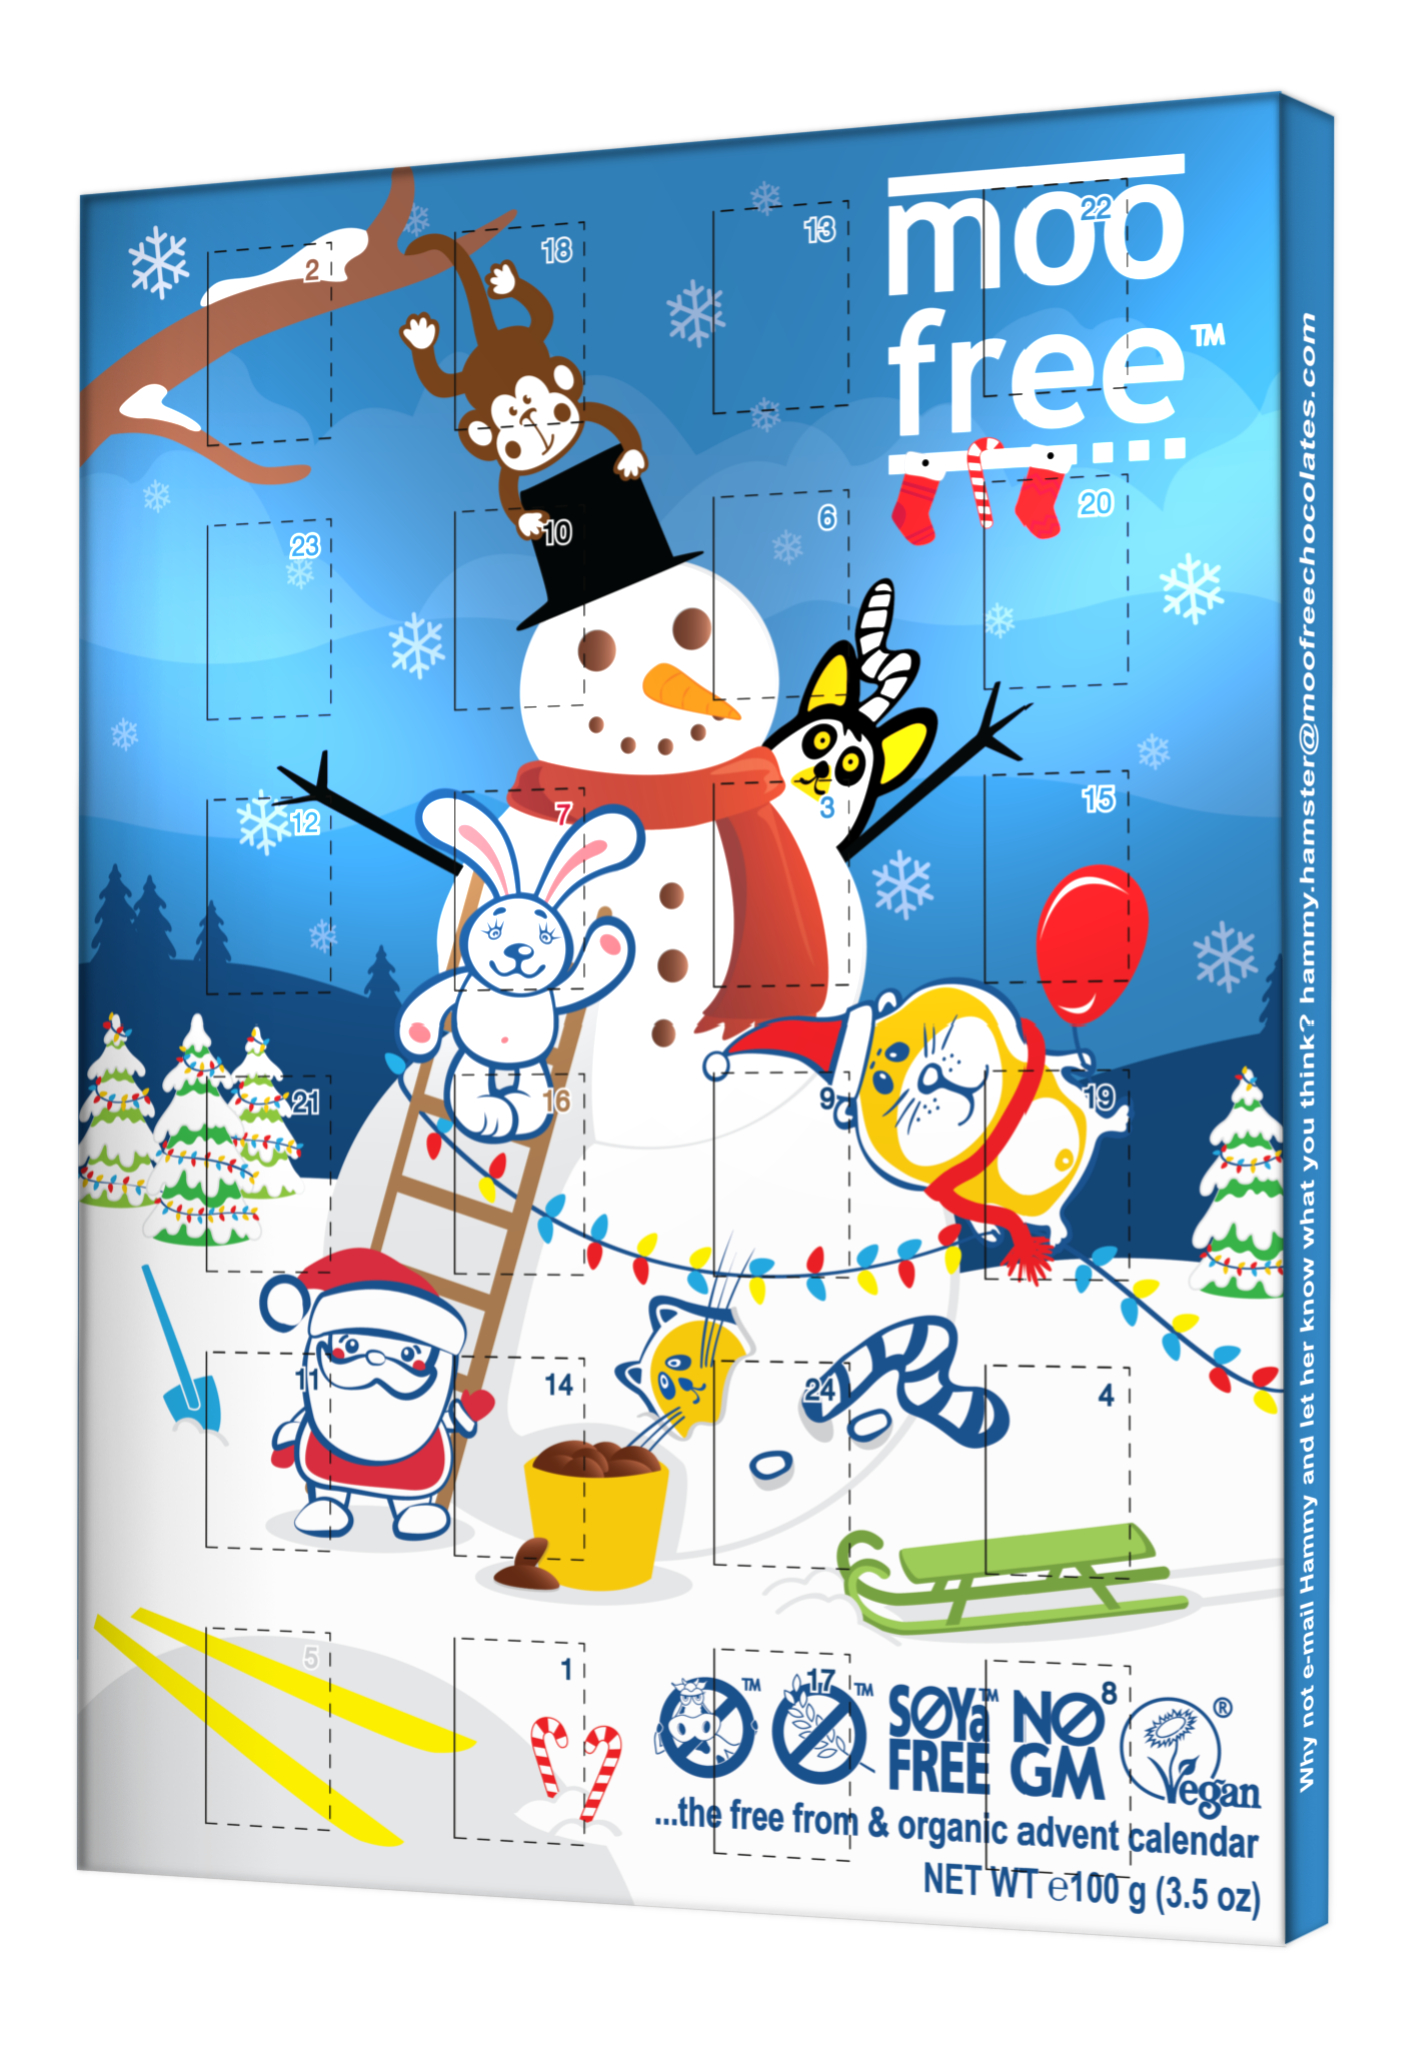 A blue advent calendar with a white snowman on the front. He is wearing a red scarf and there are smaller figures of bunnies and Father Christmas also on the front